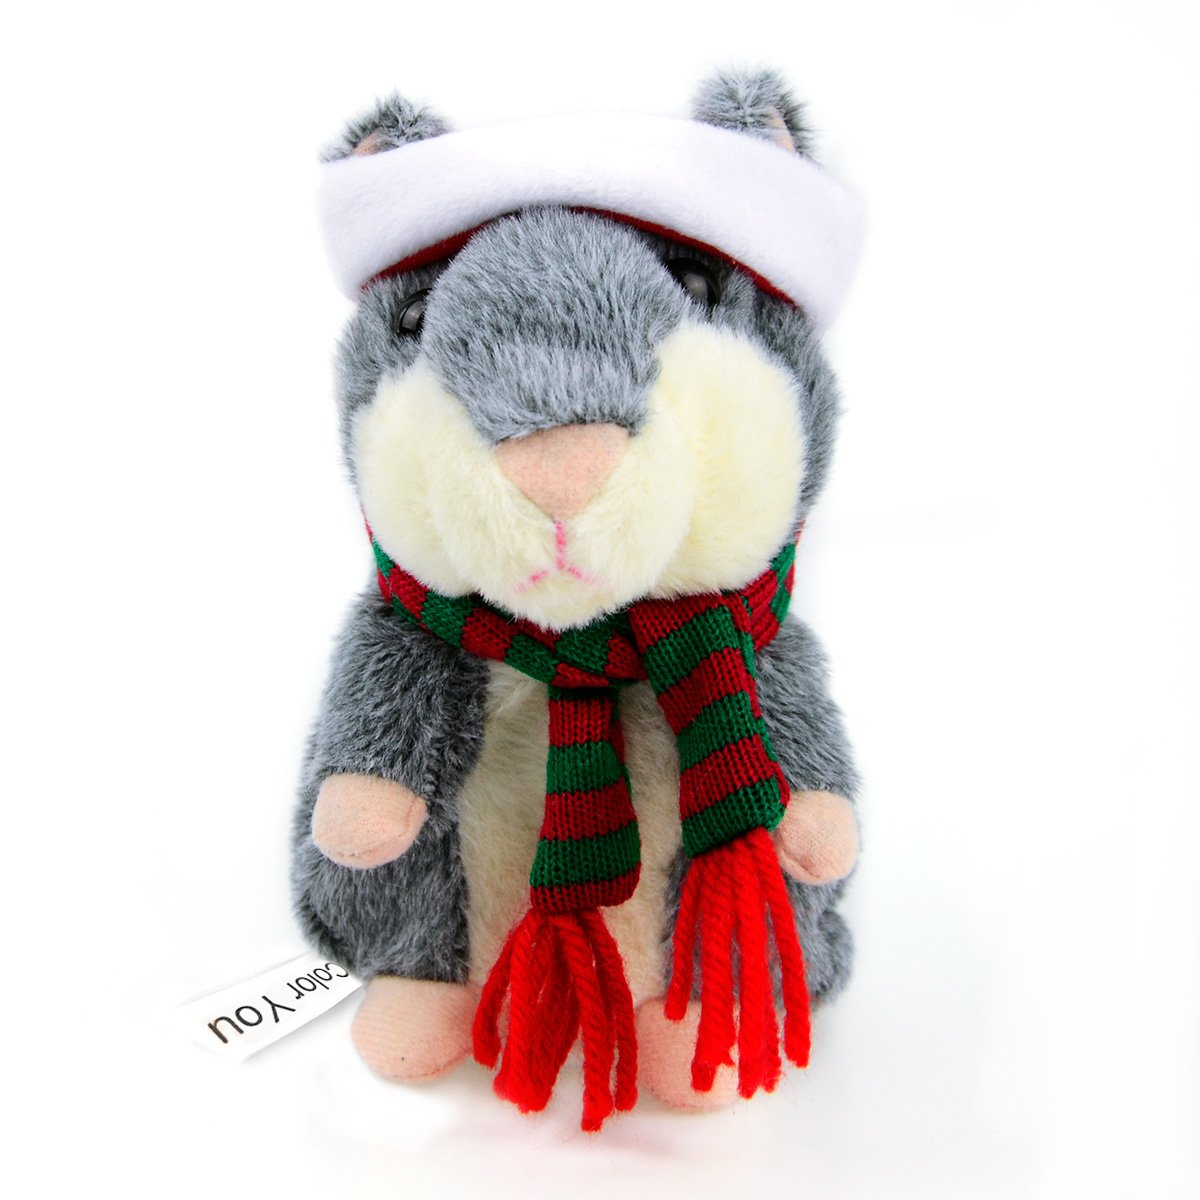 Color You Talking Hamster Repeats What You Say in Christmas Suit Plush Animal Toy Electronic Hamster Mouse 3 x 5.7 inches (Grey)